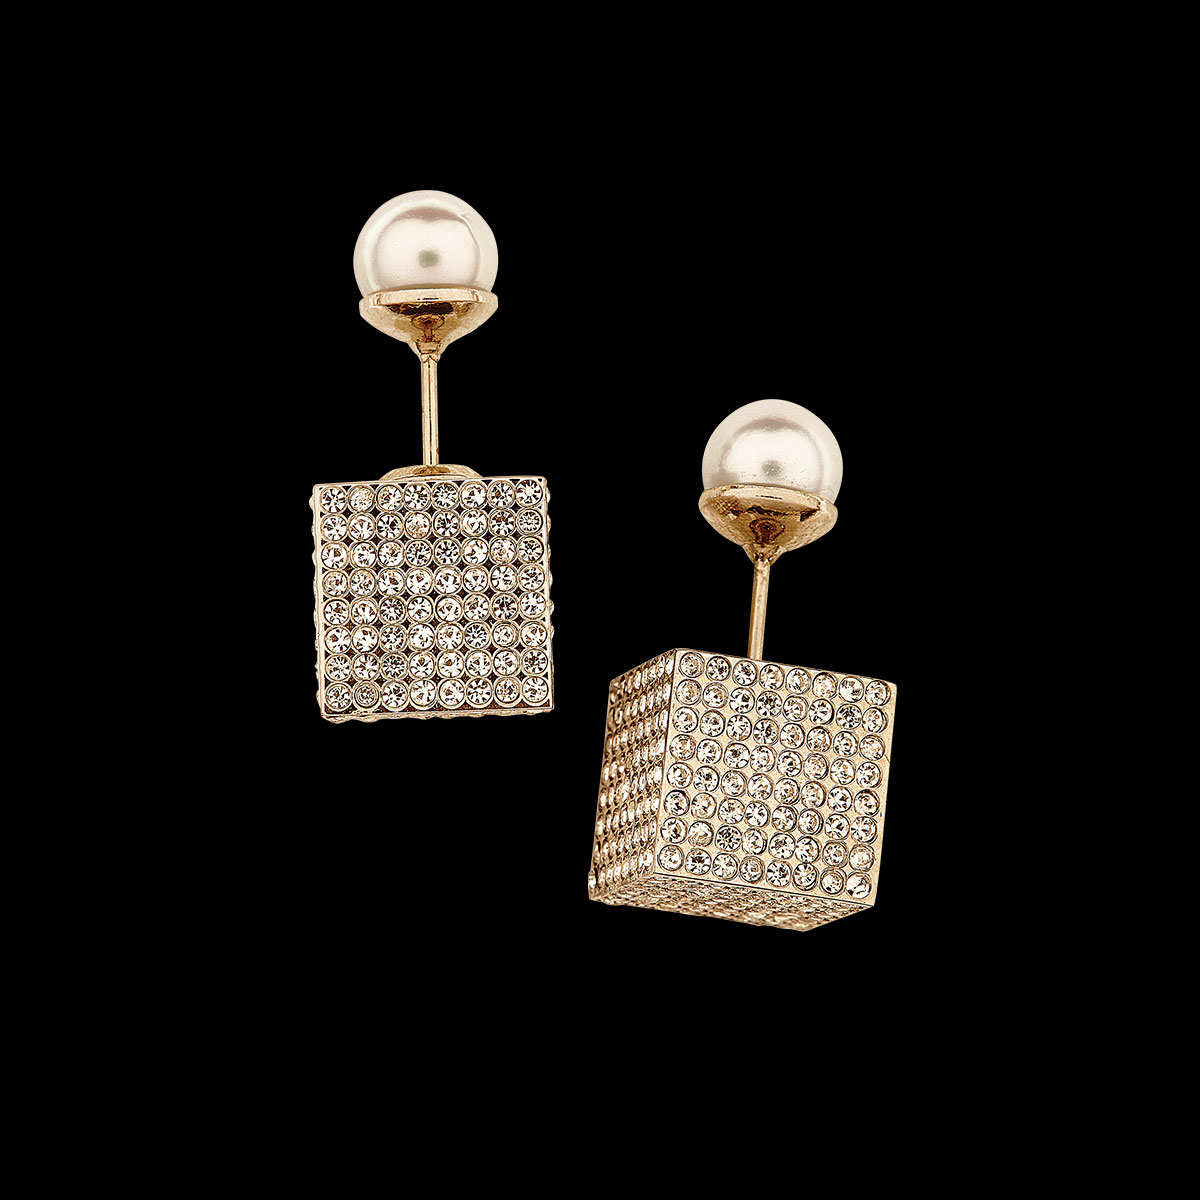 Ditch your grandmother's pearls. Here are 10 unique alternatives to the classic stud earring: http://t.co/7bxwC1TM73 http://t.co/D5ARy0LApx